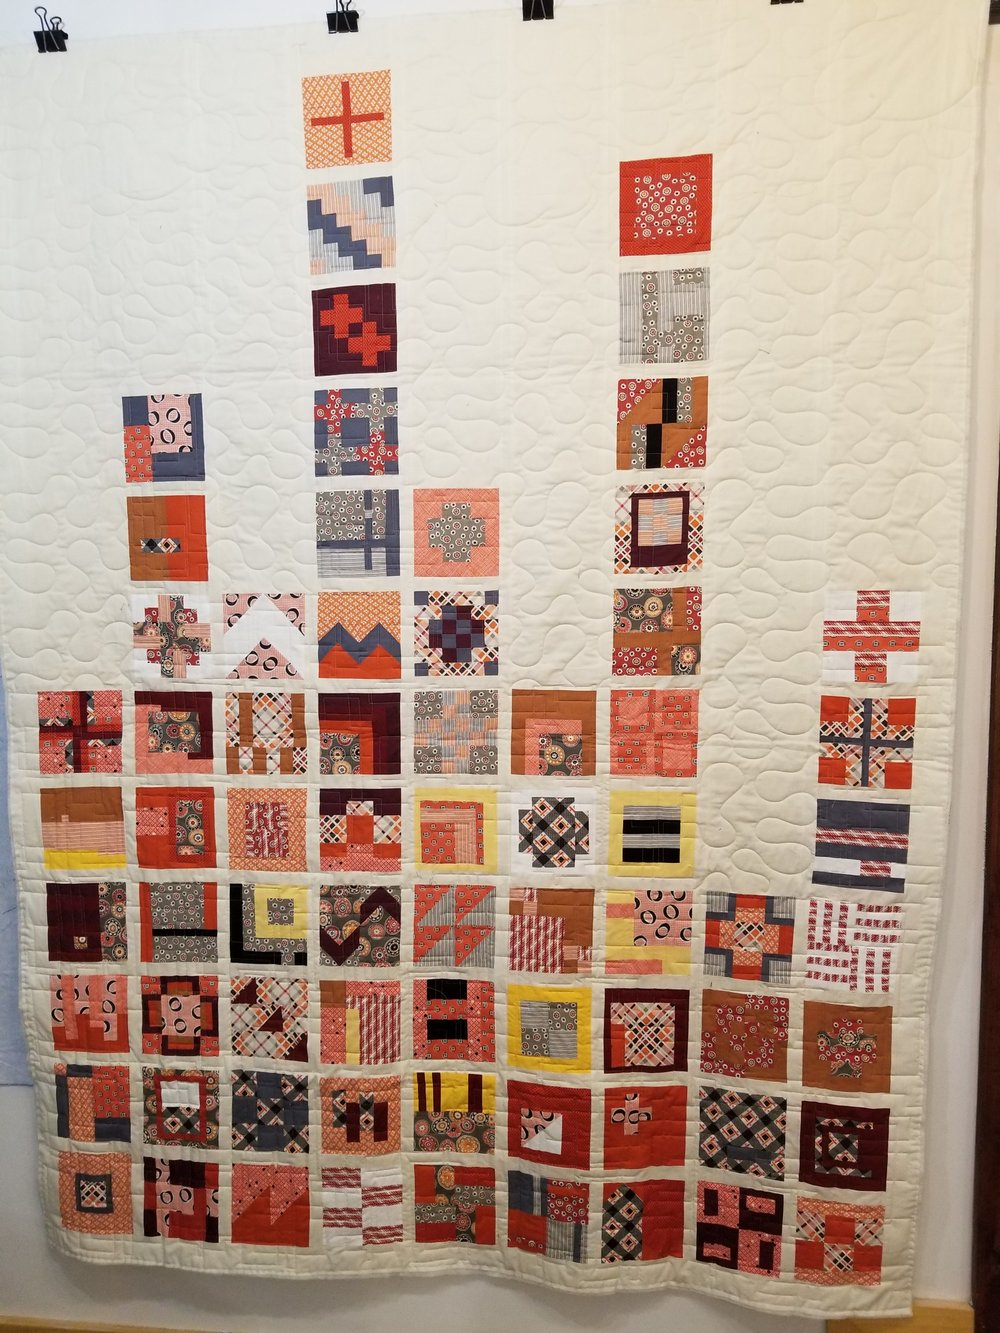 Notice each coloured block is different in this quilt top, no duplicates or repetition.